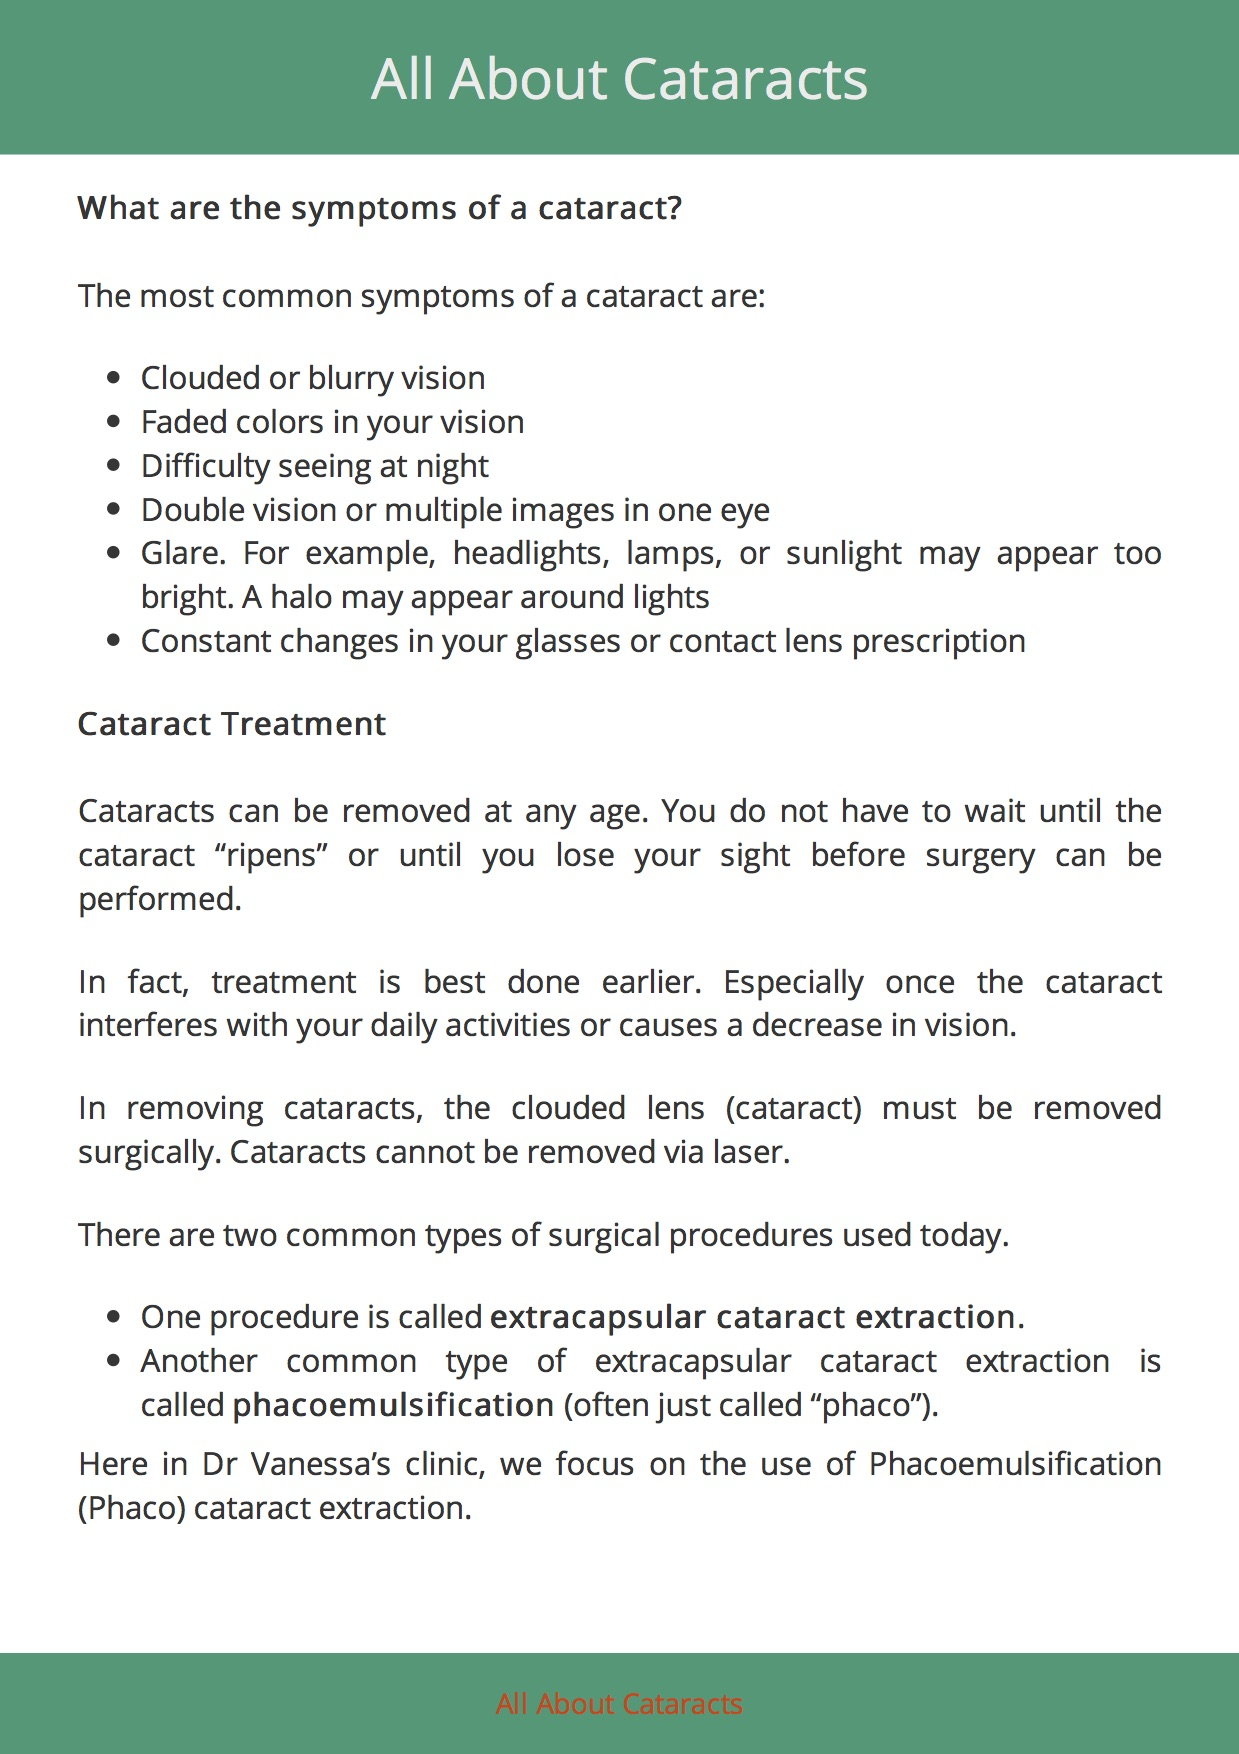 All About Cataracts 5